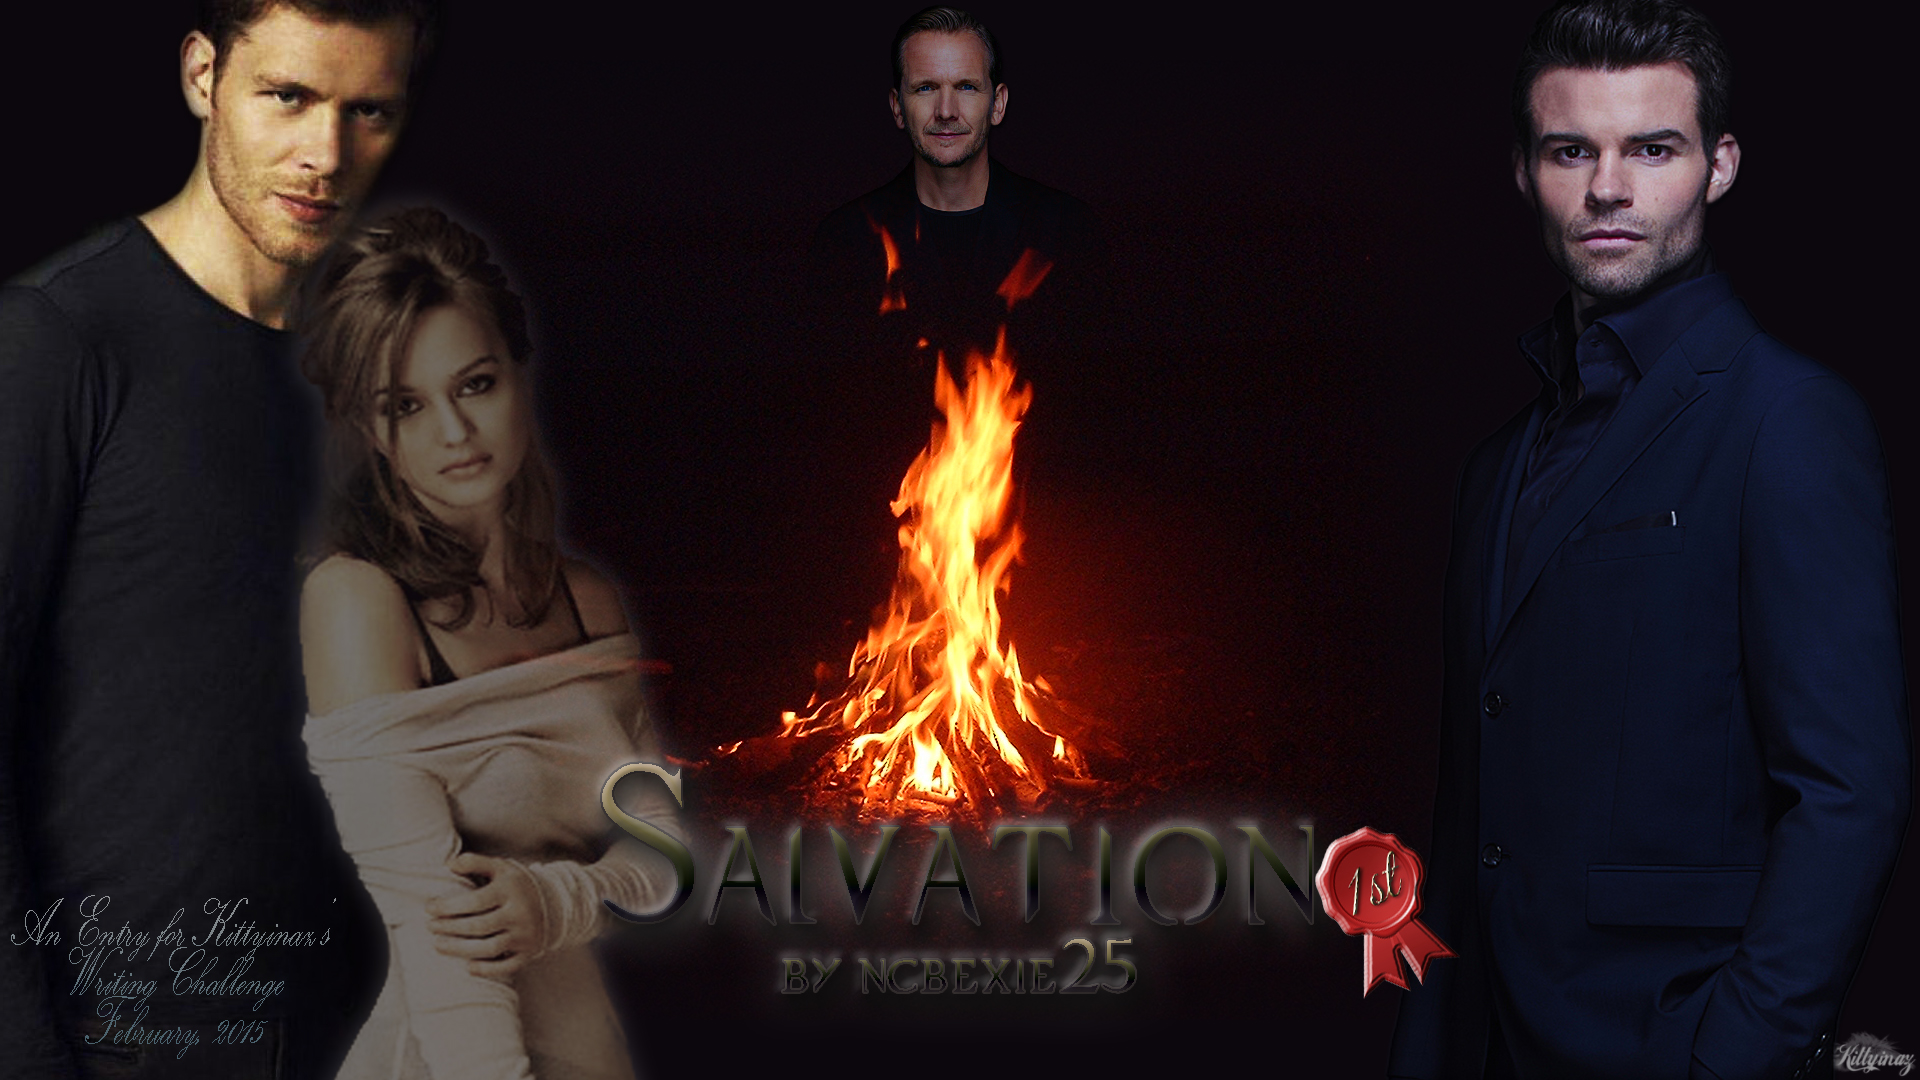 Salvation – Rated M by ncbexie25